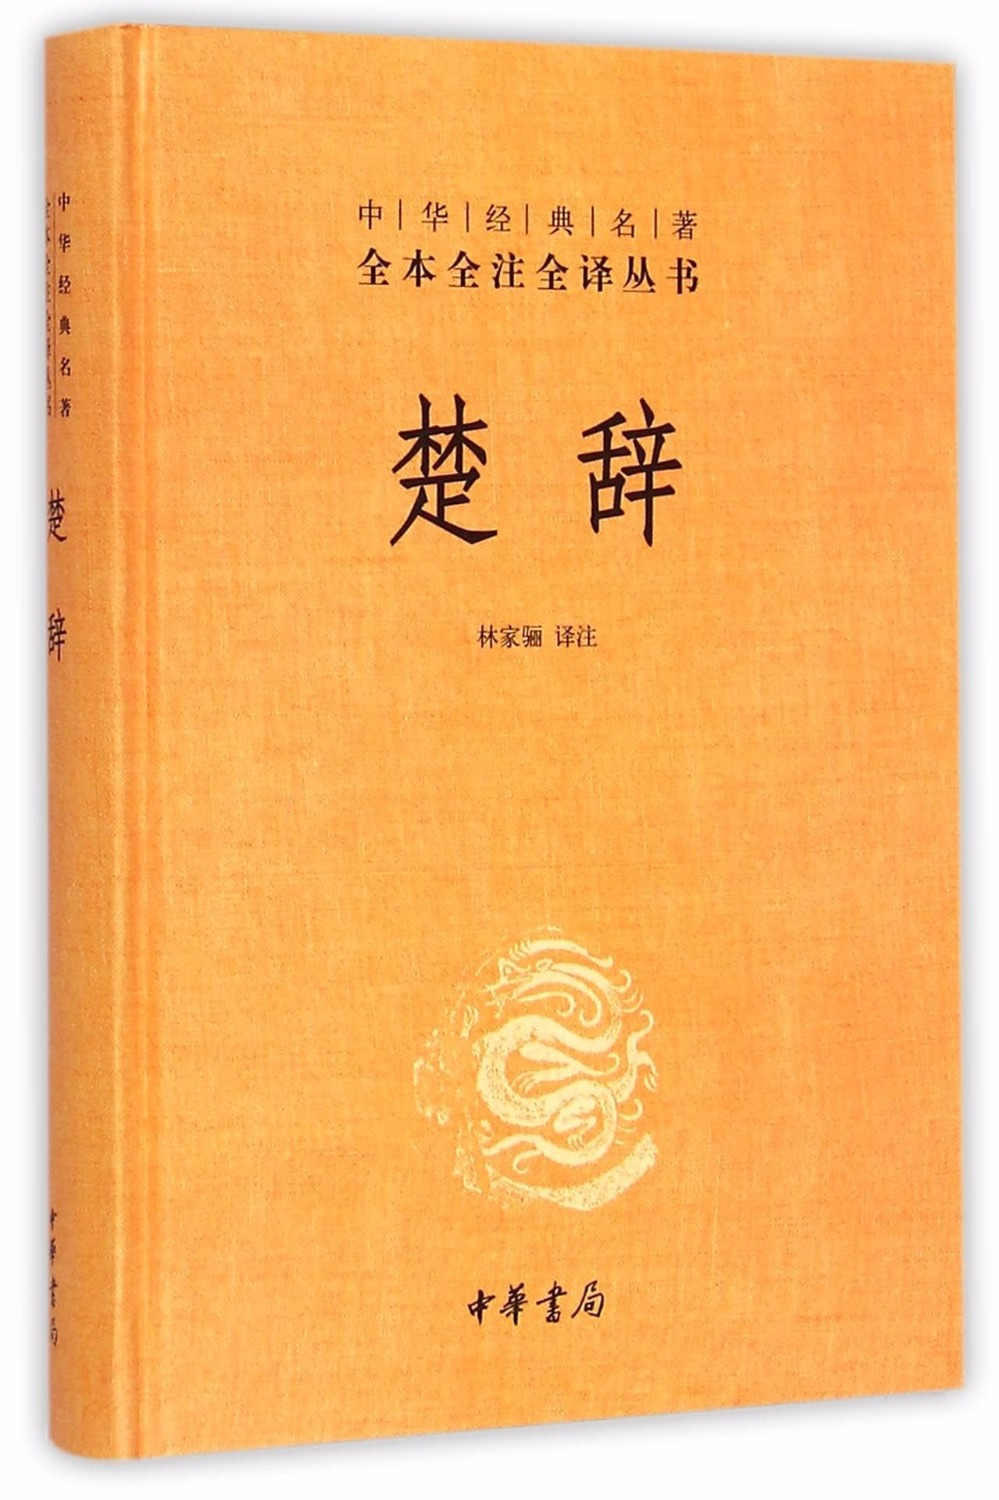 The Songs Of Chu Chinese Masterpiece Literary Book-Chuci